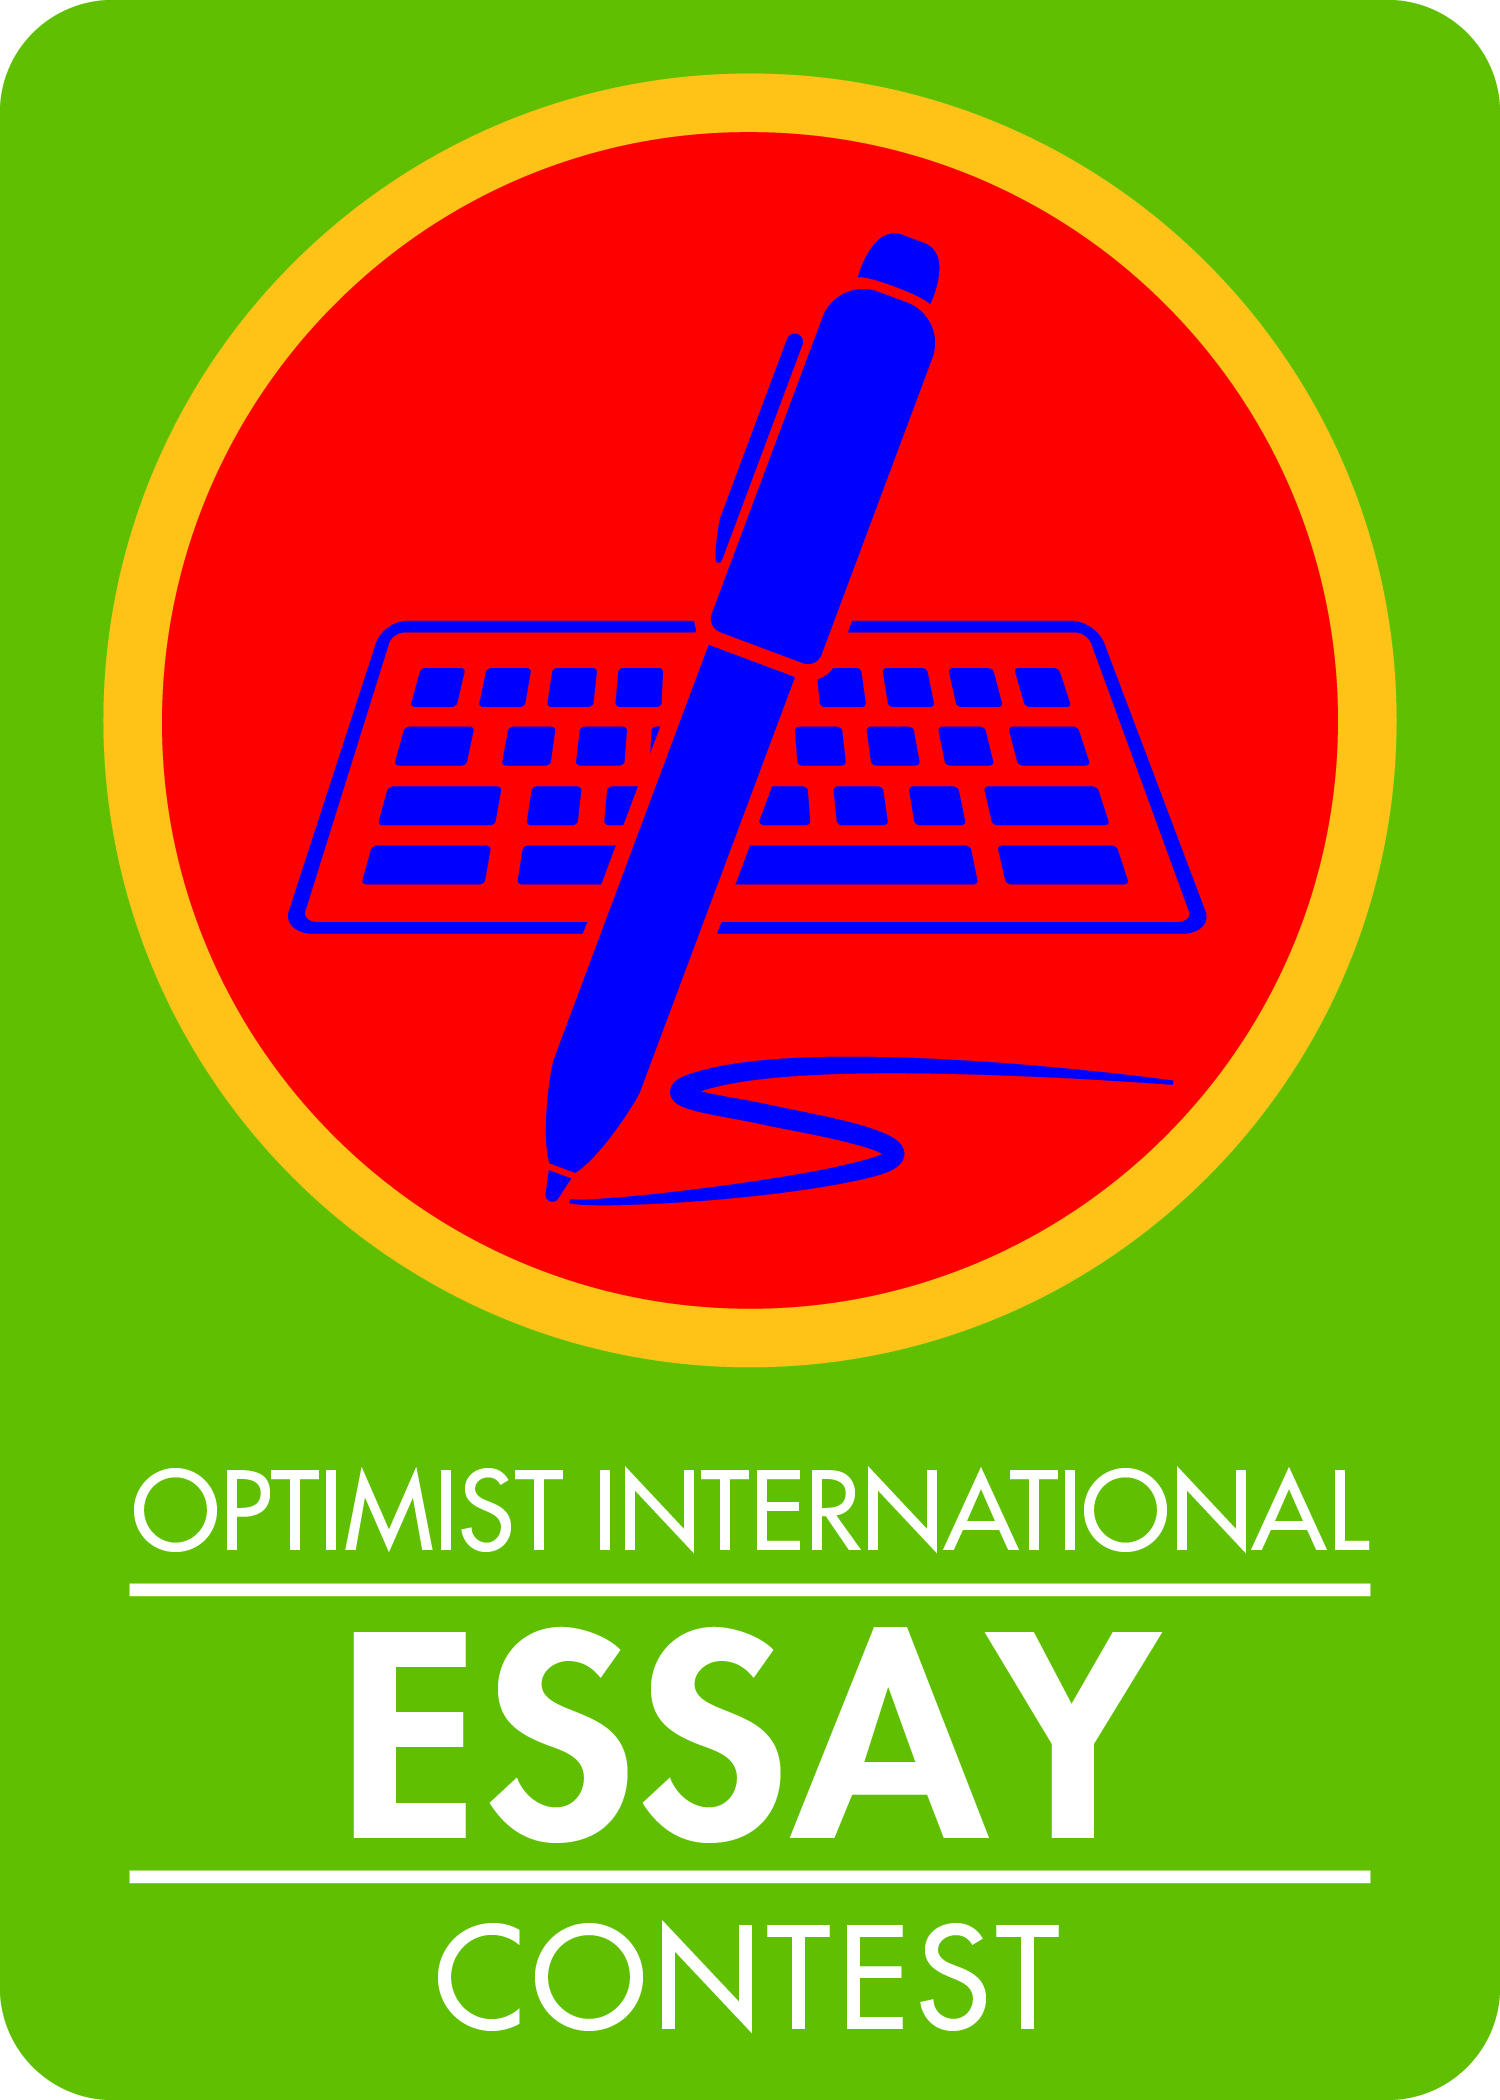 international logos essay contest high res